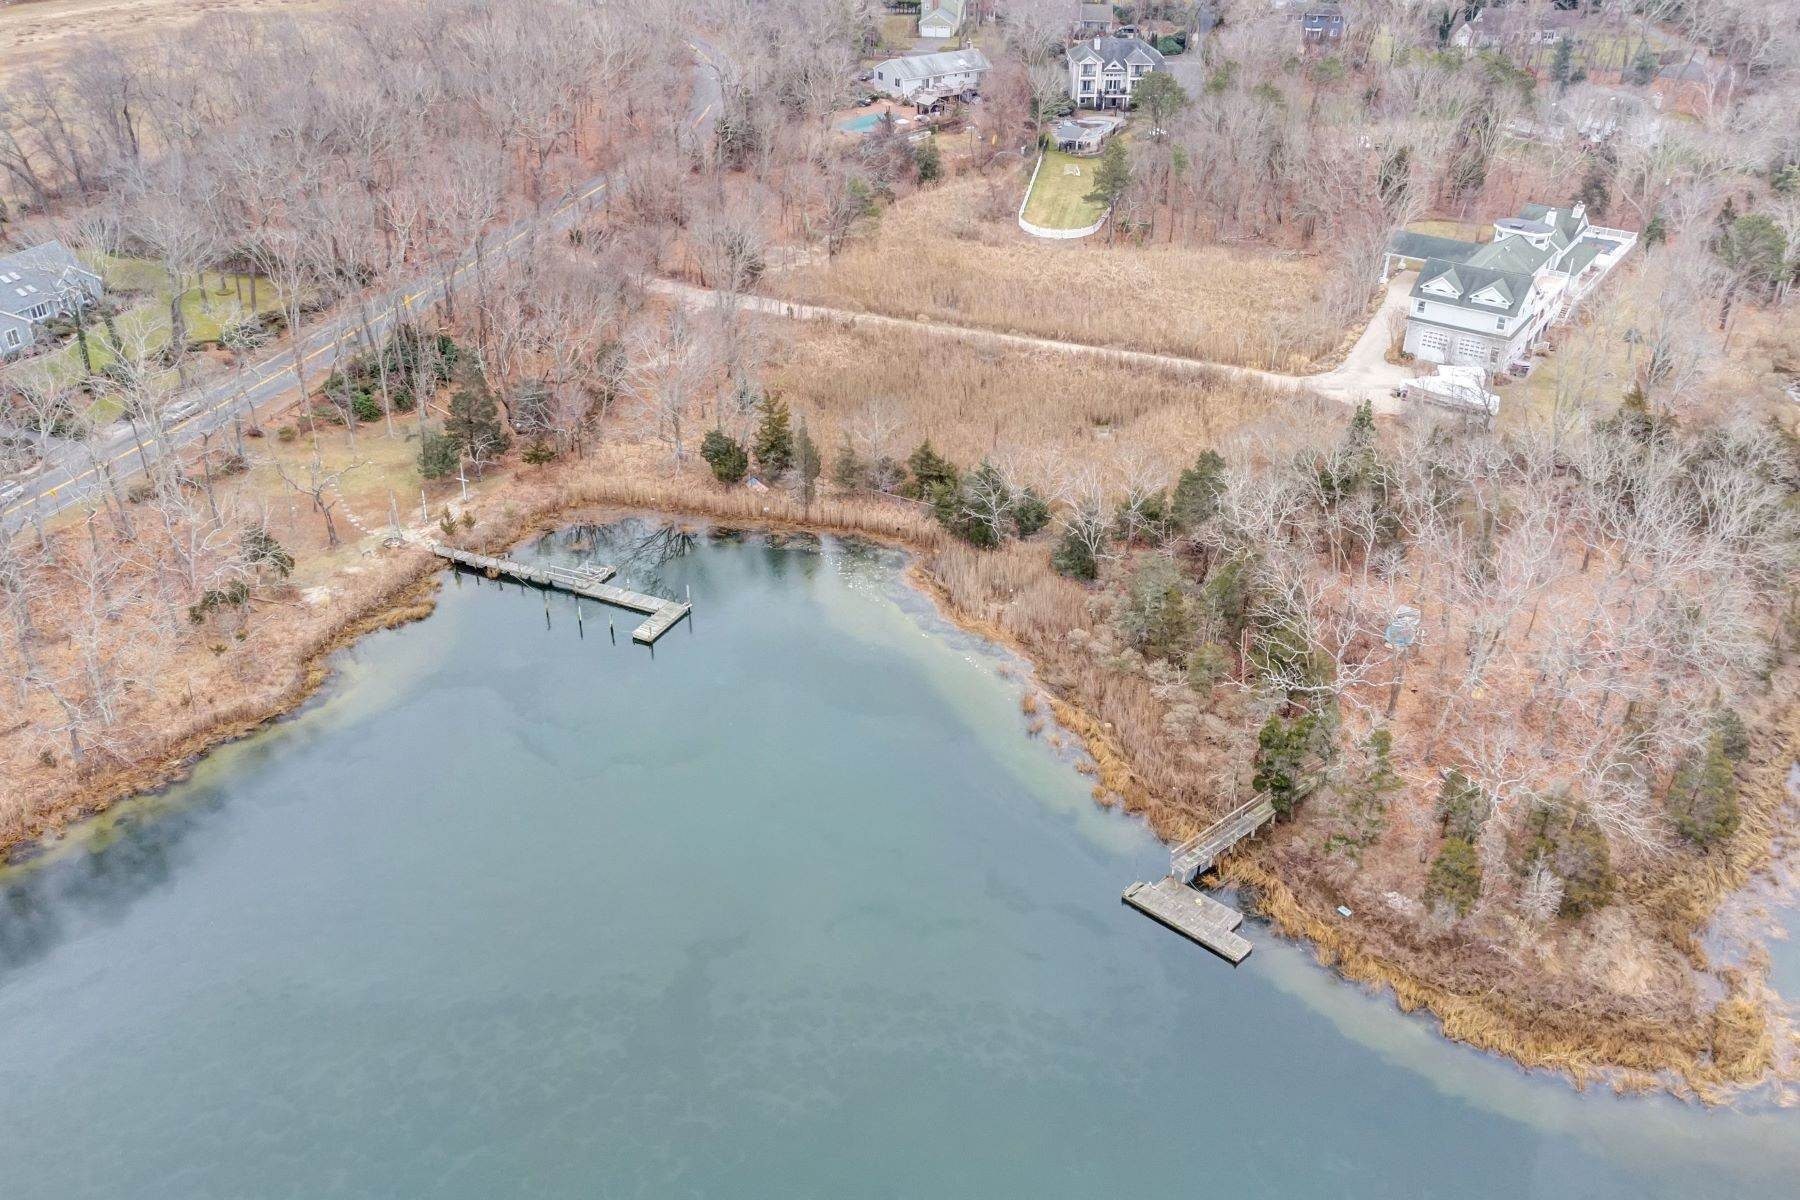 Land for Sale at 265 Peconic Bay Boulevard, Aquebogue, NY 11931 265 Peconic Bay Boulevard Aquebogue, New York 11931 United States